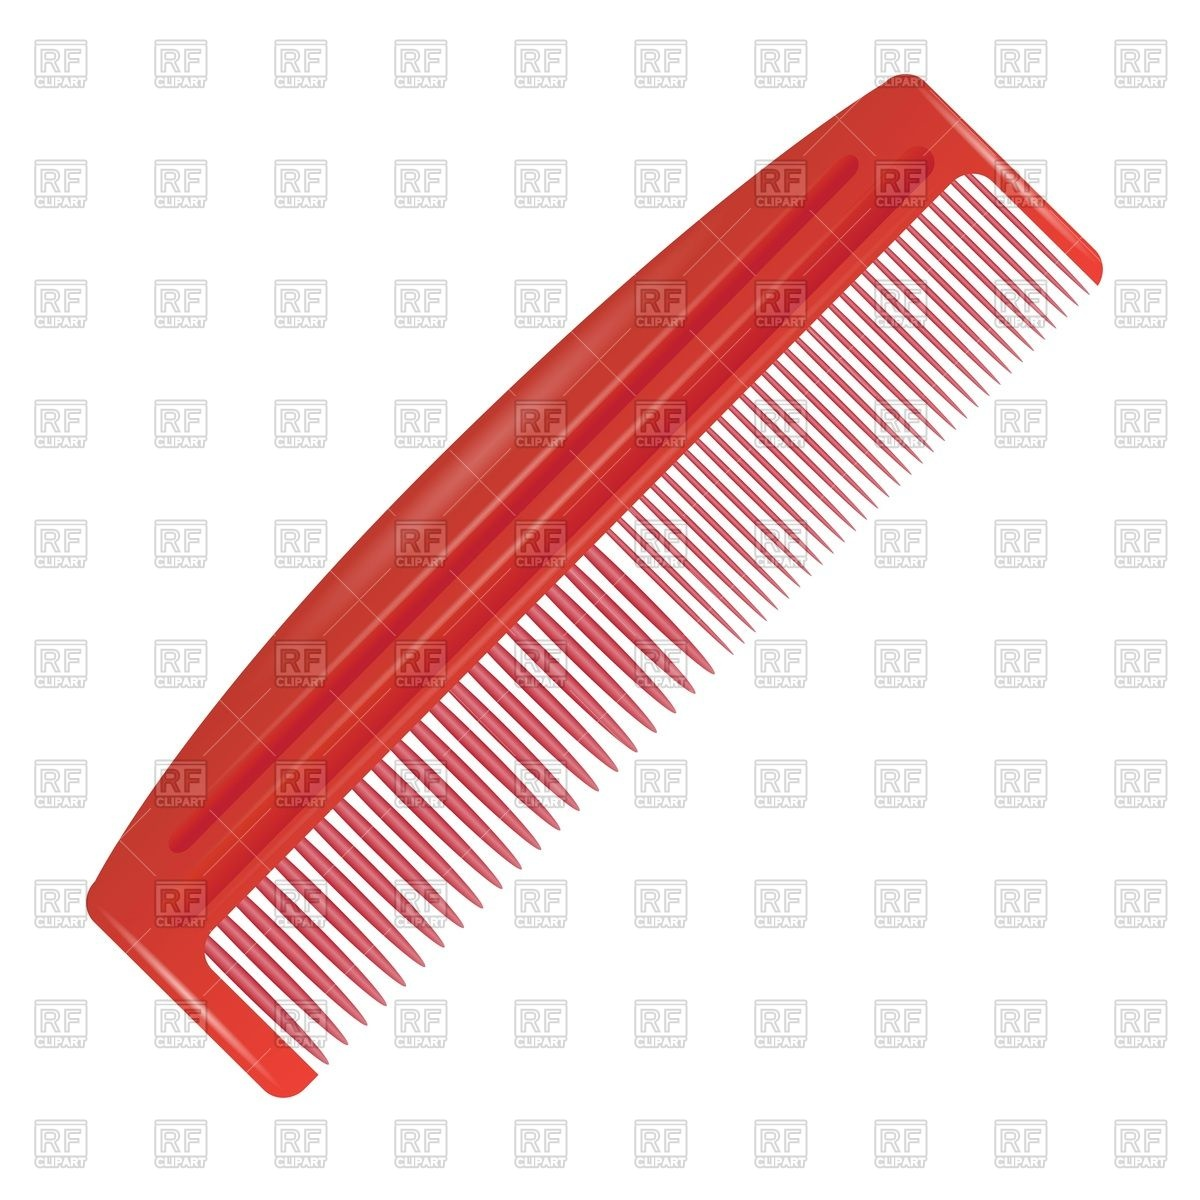 Red plastic comb on a white background Vector Image #47803.